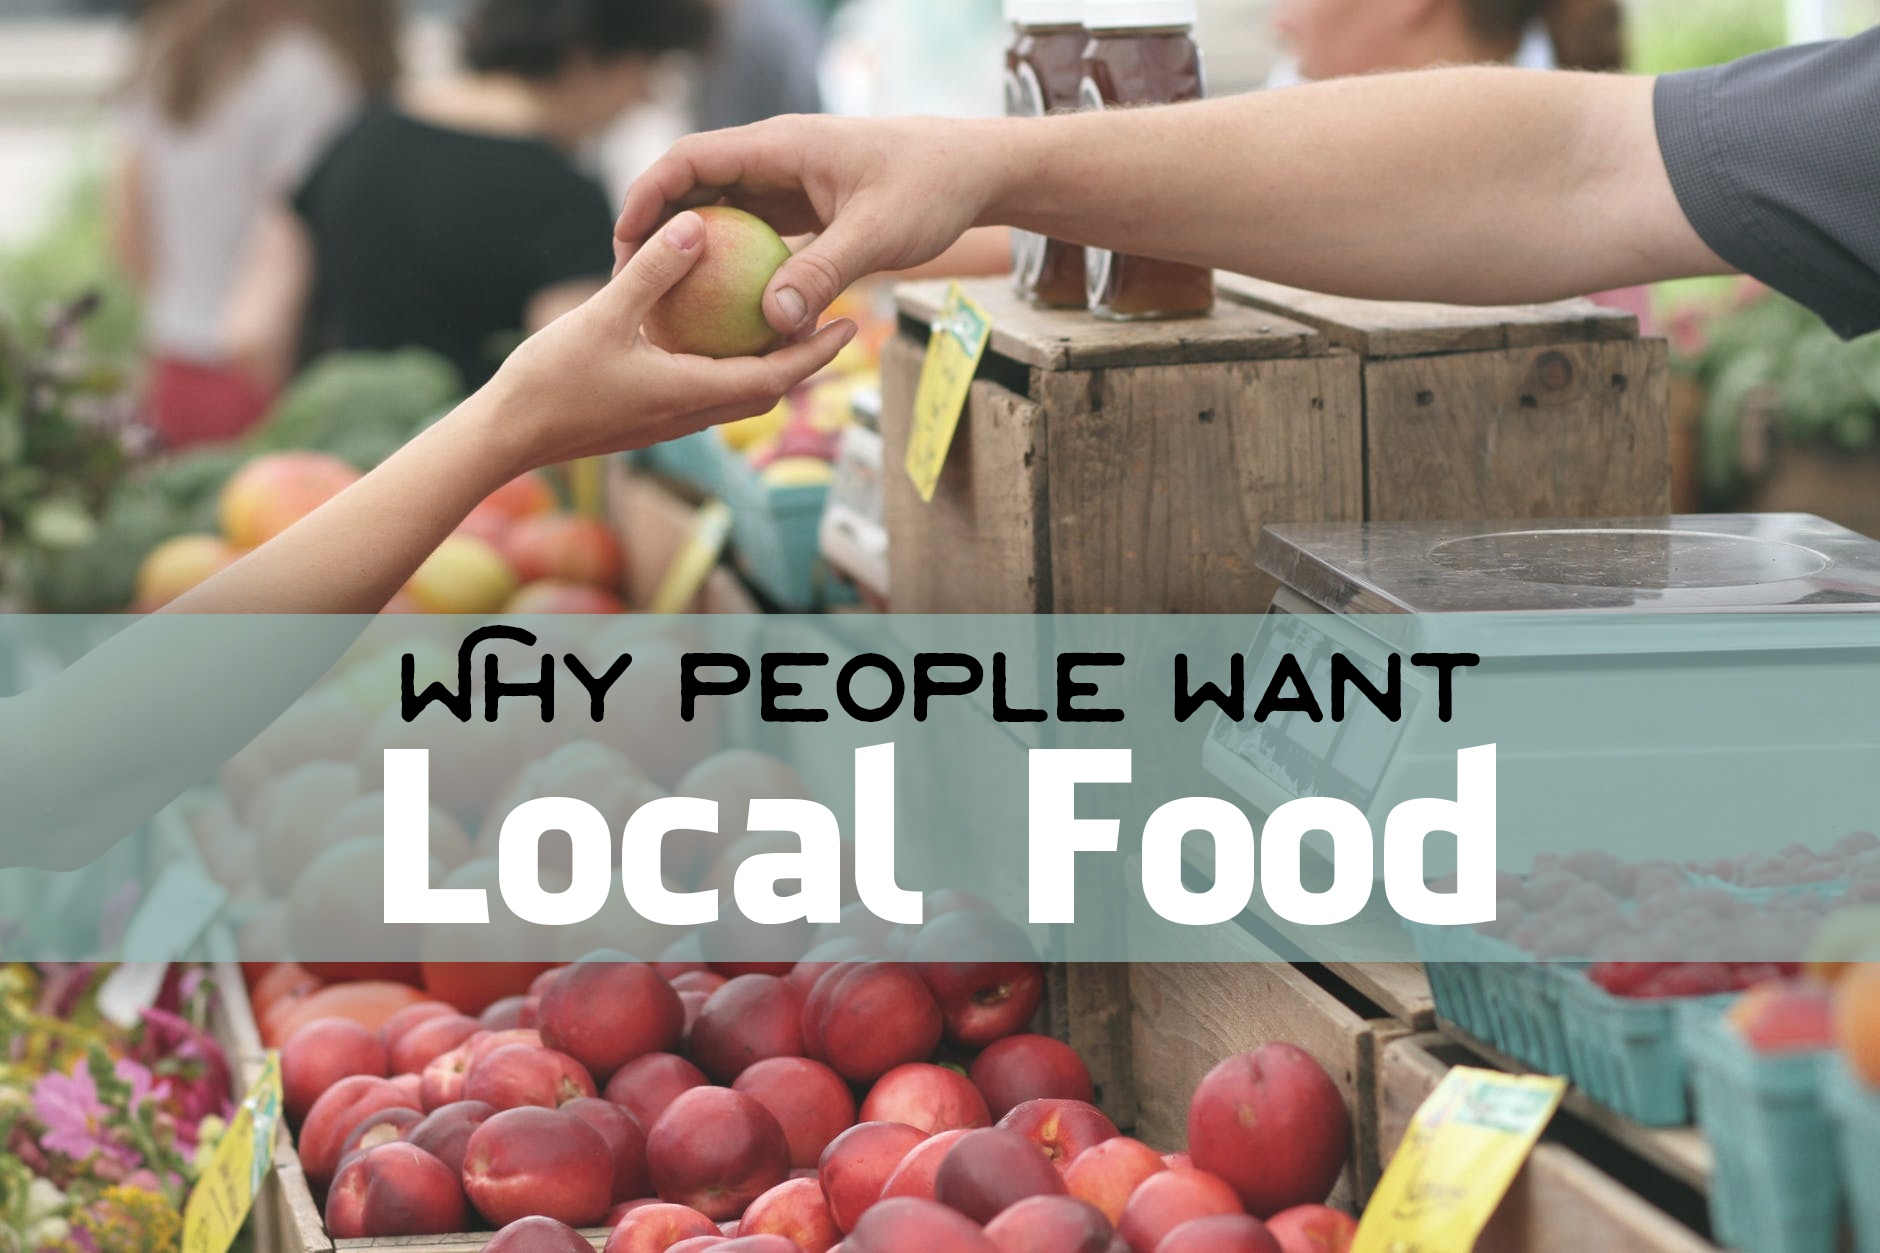 Locally Sourced Food Can Increase Restaurant Sales